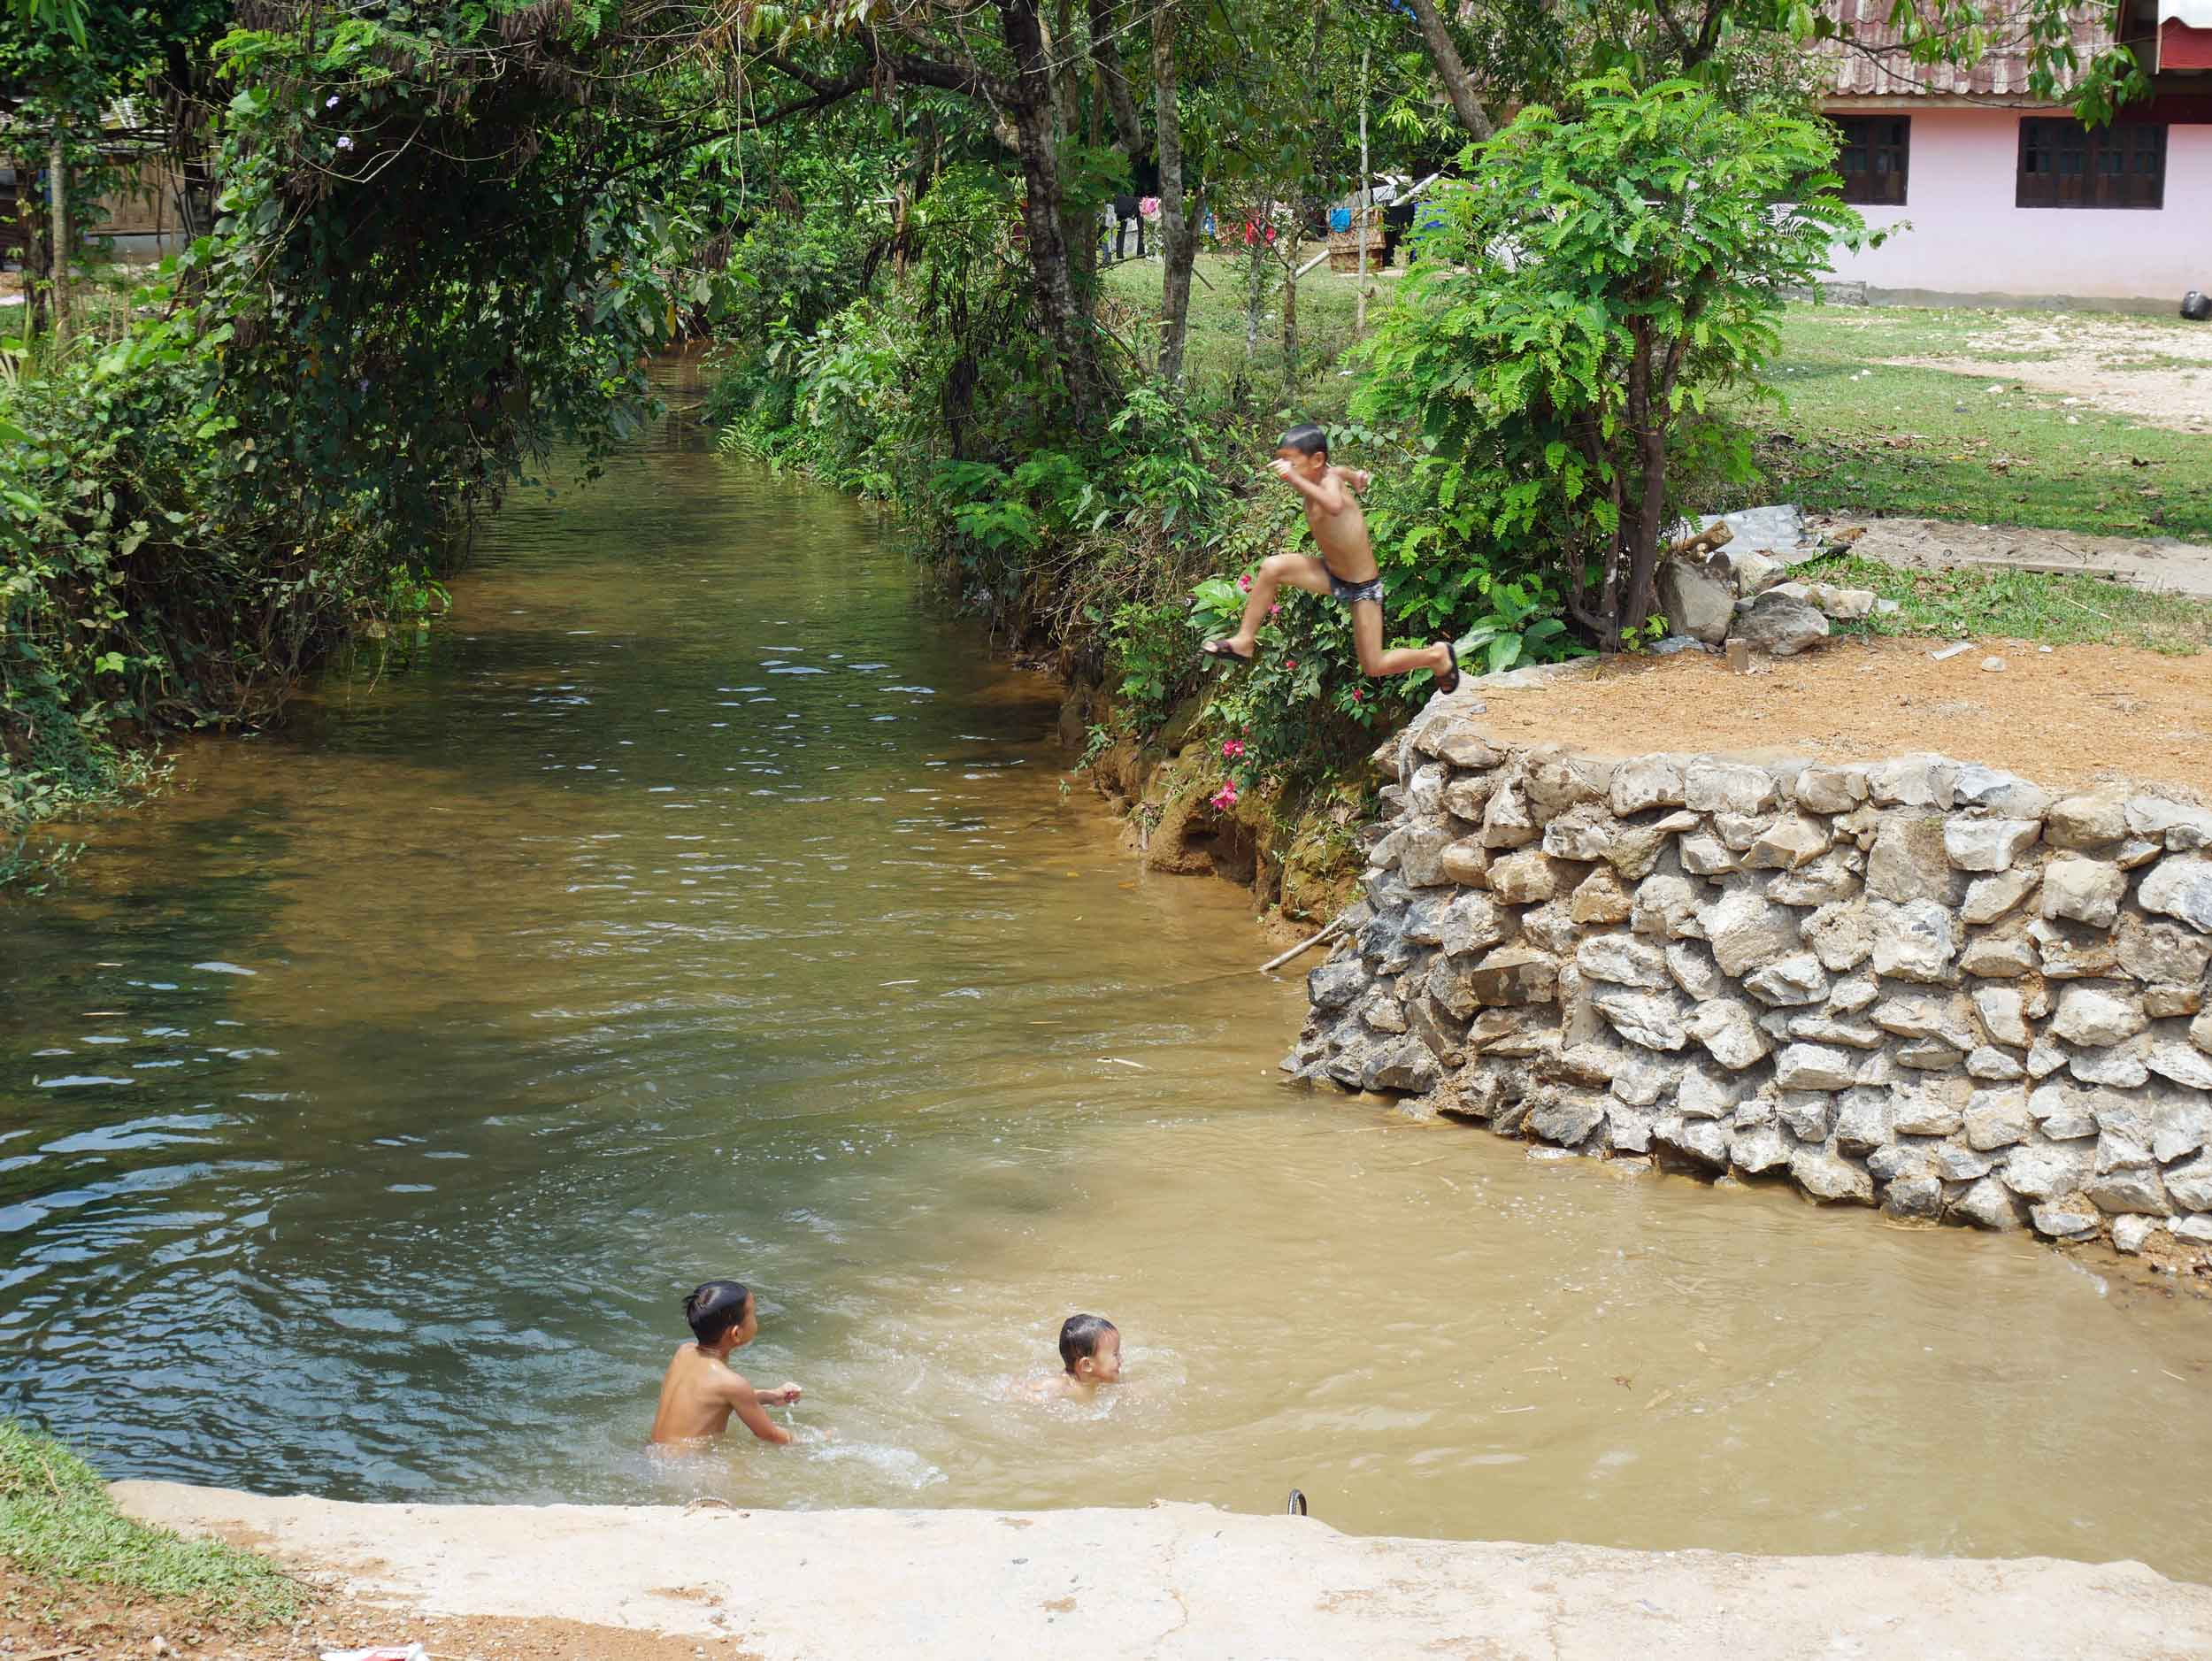 As we rode along the winding roads, we saw local children splashing in streams,while adults lounged in hammocks and under the shade of small porches--it was a Sunday after all!